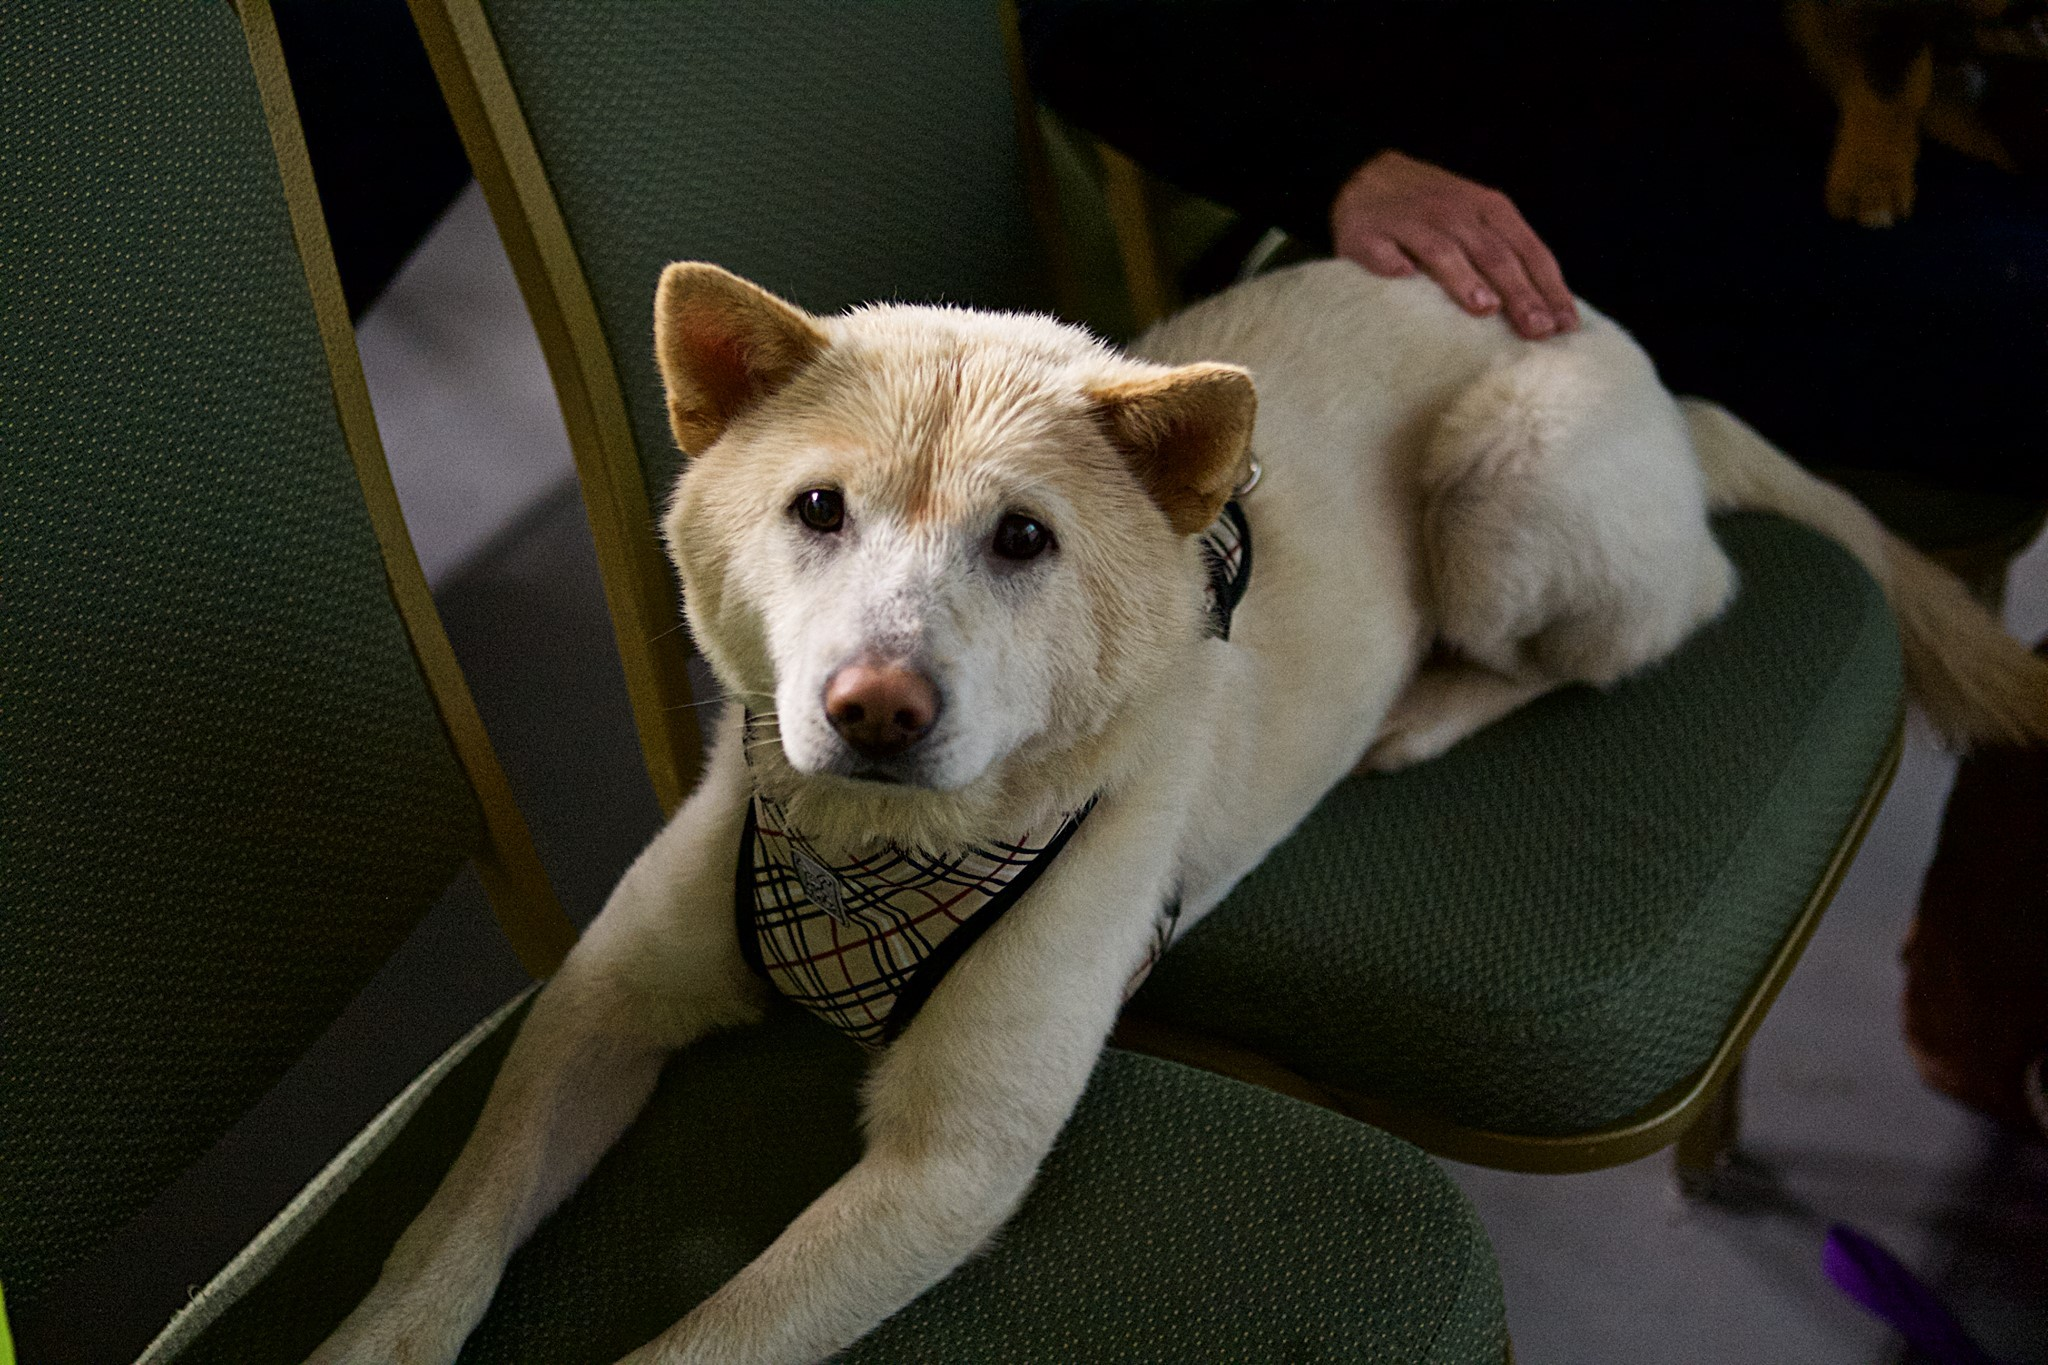 Pao, a dog rescued from Yulin dog meat farms, at the Berkeley Animal Rights Center.